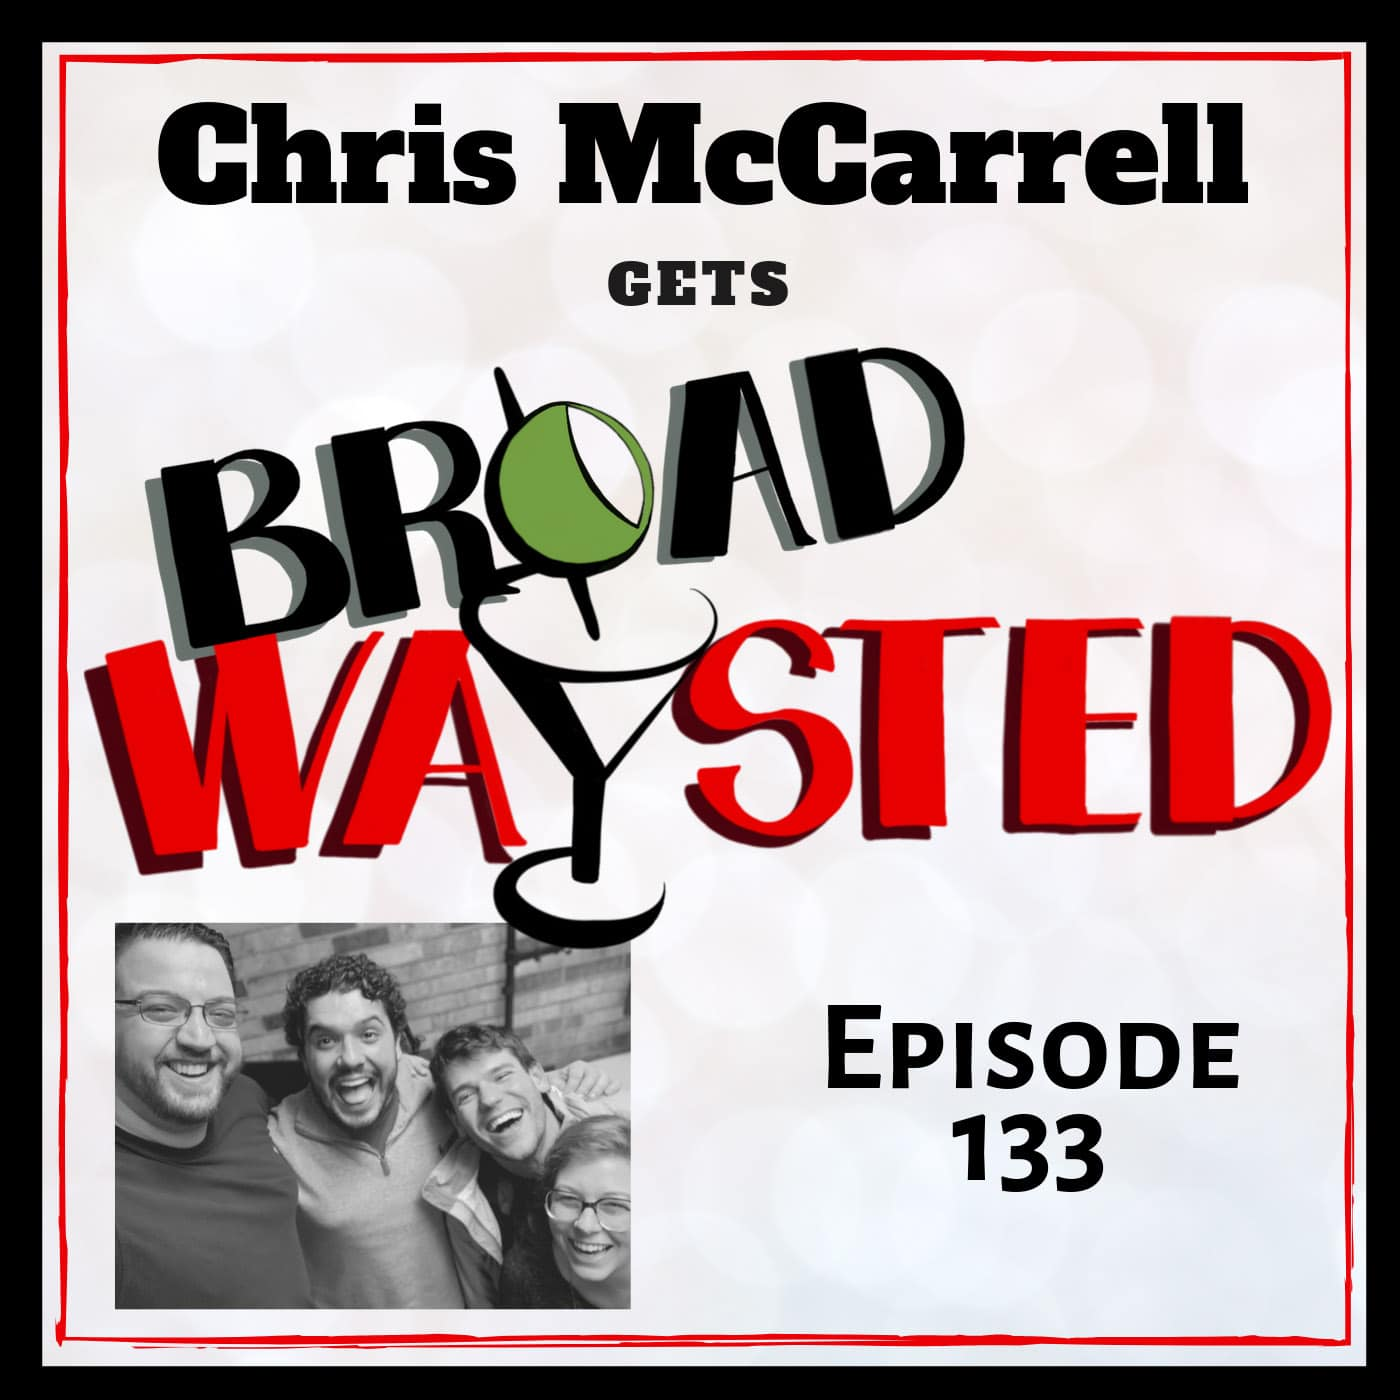 Broadwaysted Ep 133 Chris McCarrell